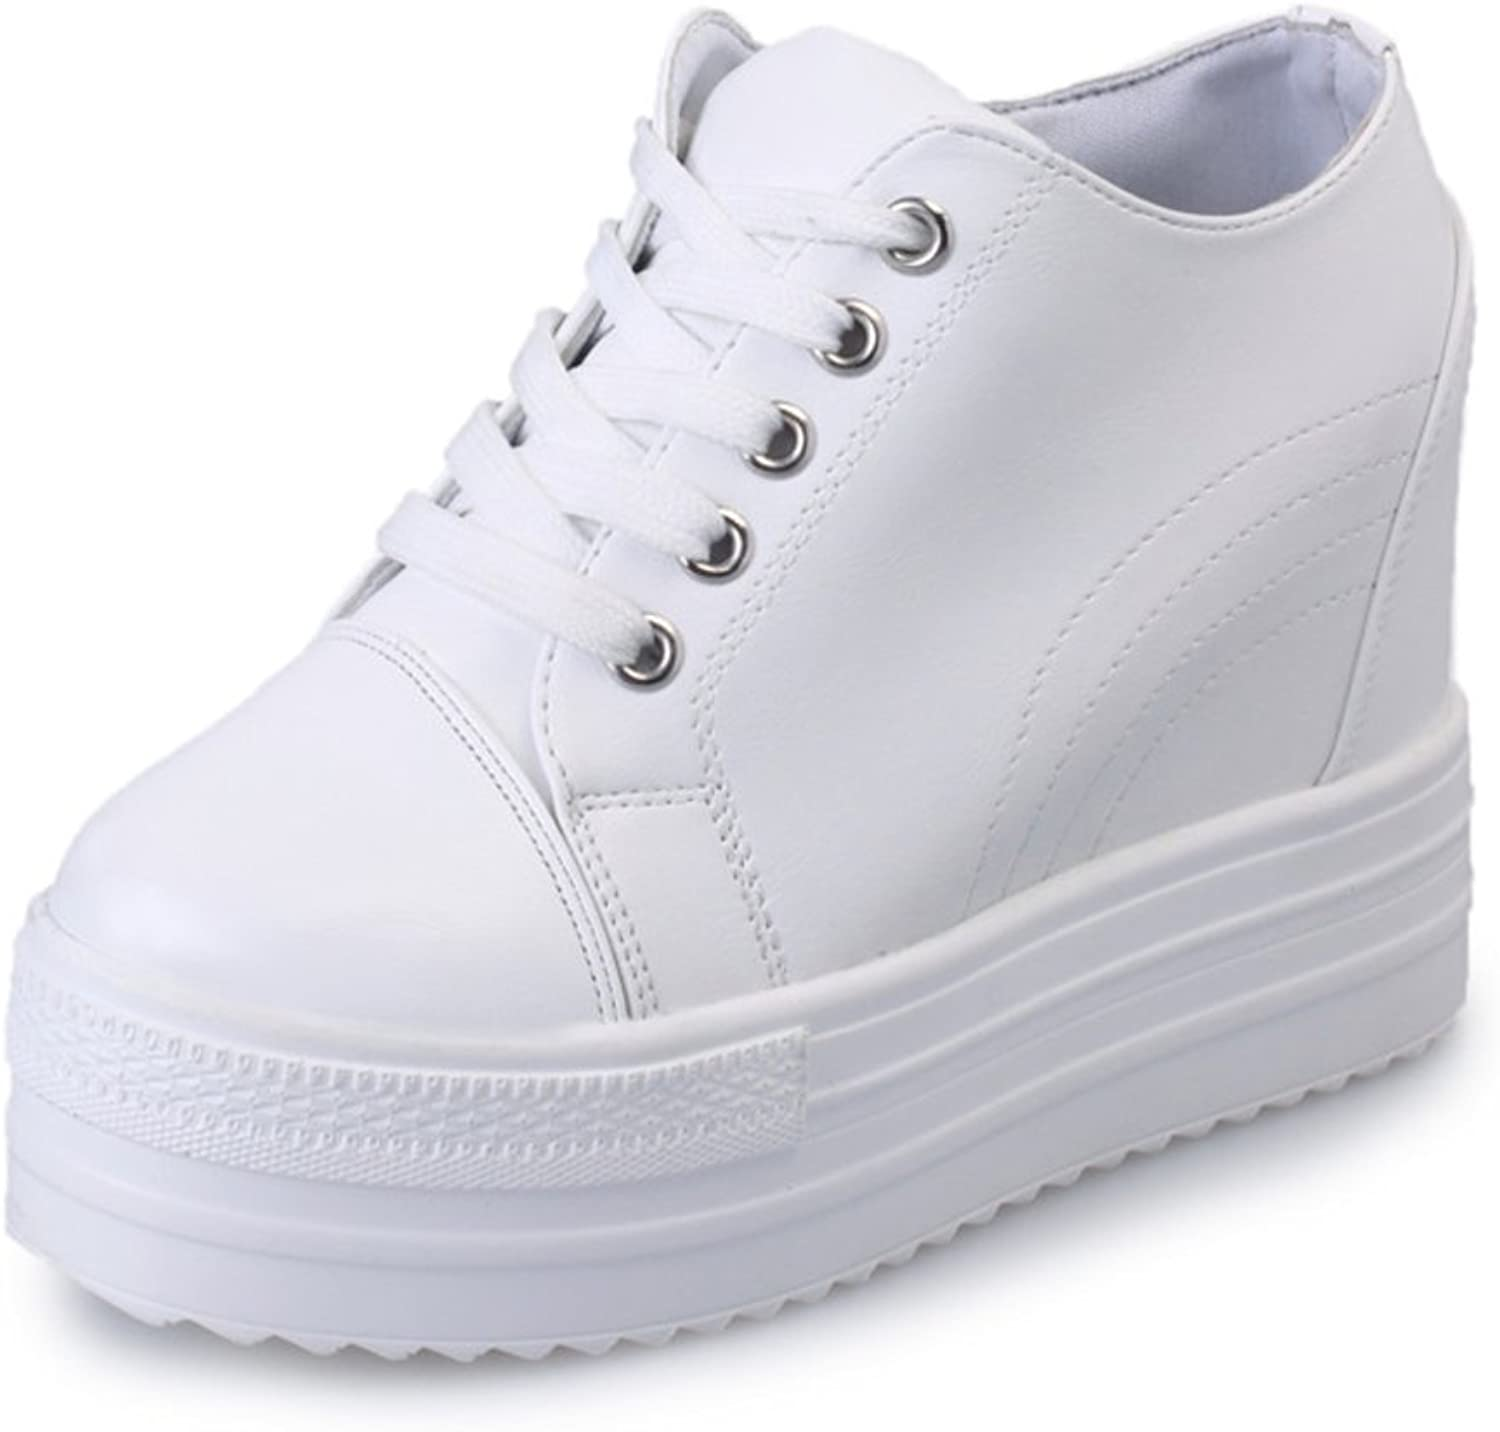 Huhuj Fall within the Institute of wind increased leisure shoes white-tie white shoe Thick-soled platform shoes